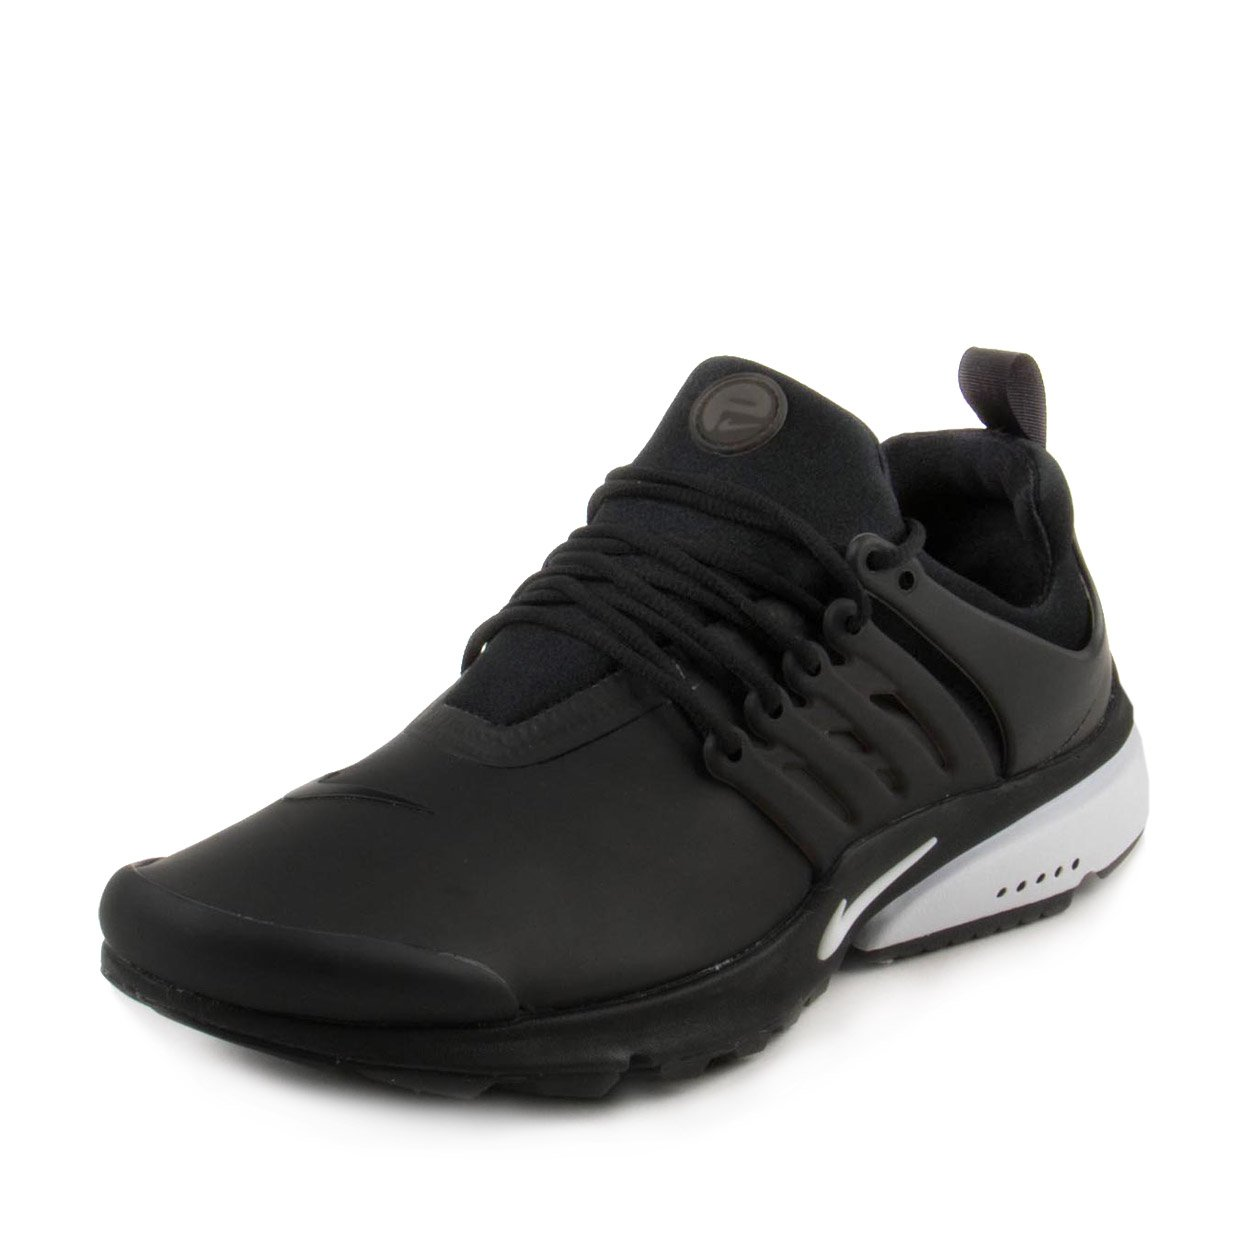 finest selection af293 75b52 Galleon - Nike Mens Air Presto Low Utility Black White Running Shoe 11 Men  US